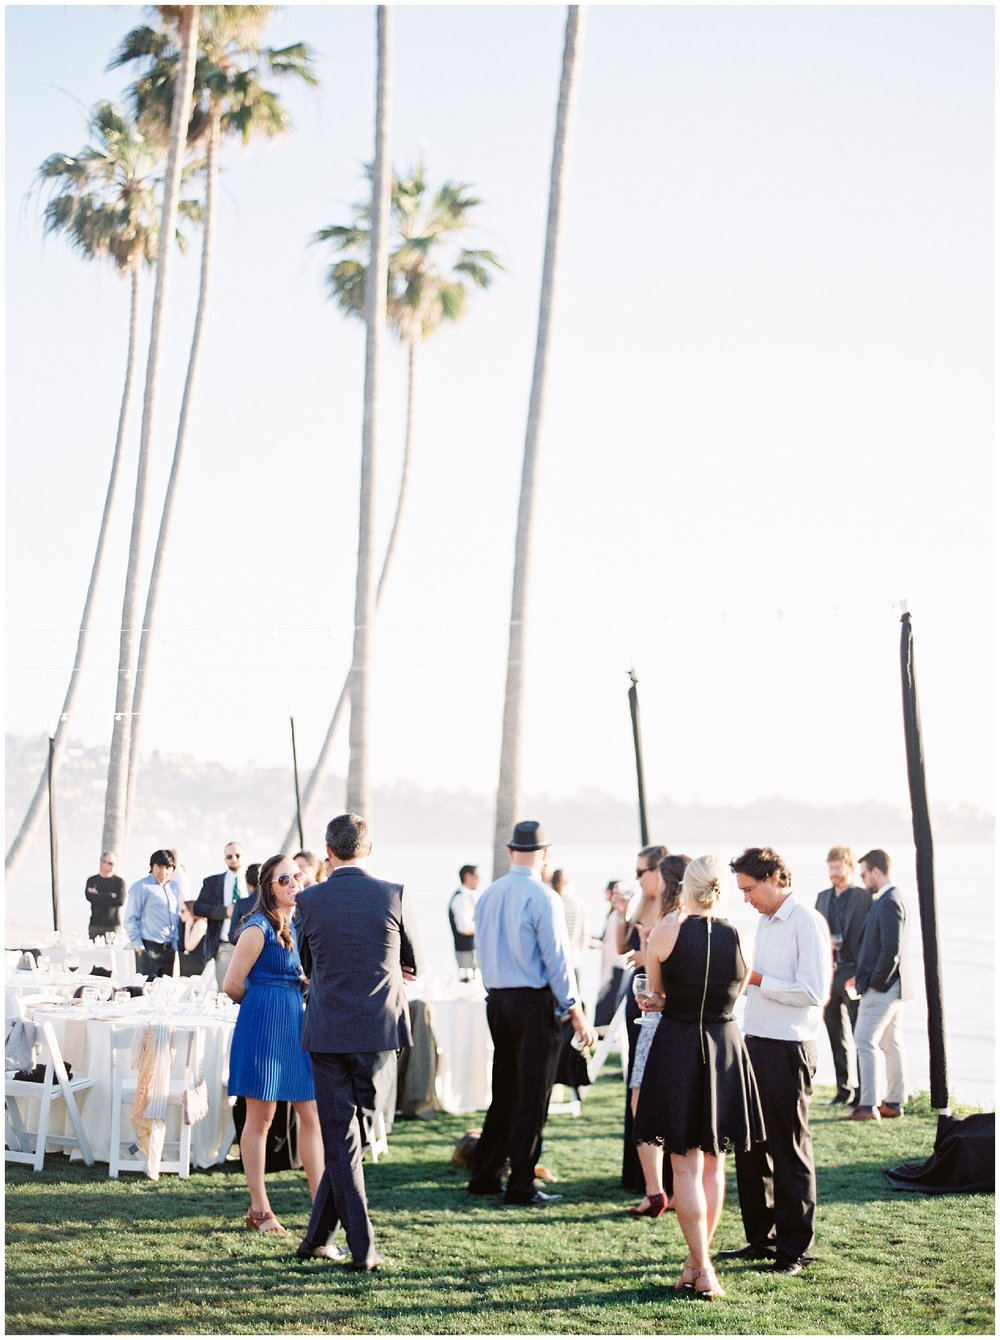 Martin Johnson House Wedding | Scripps Seaside Forum Wedding | San Diego Wedding Photographer | San Diego Film Photographer | Whiskers and Willow Photography